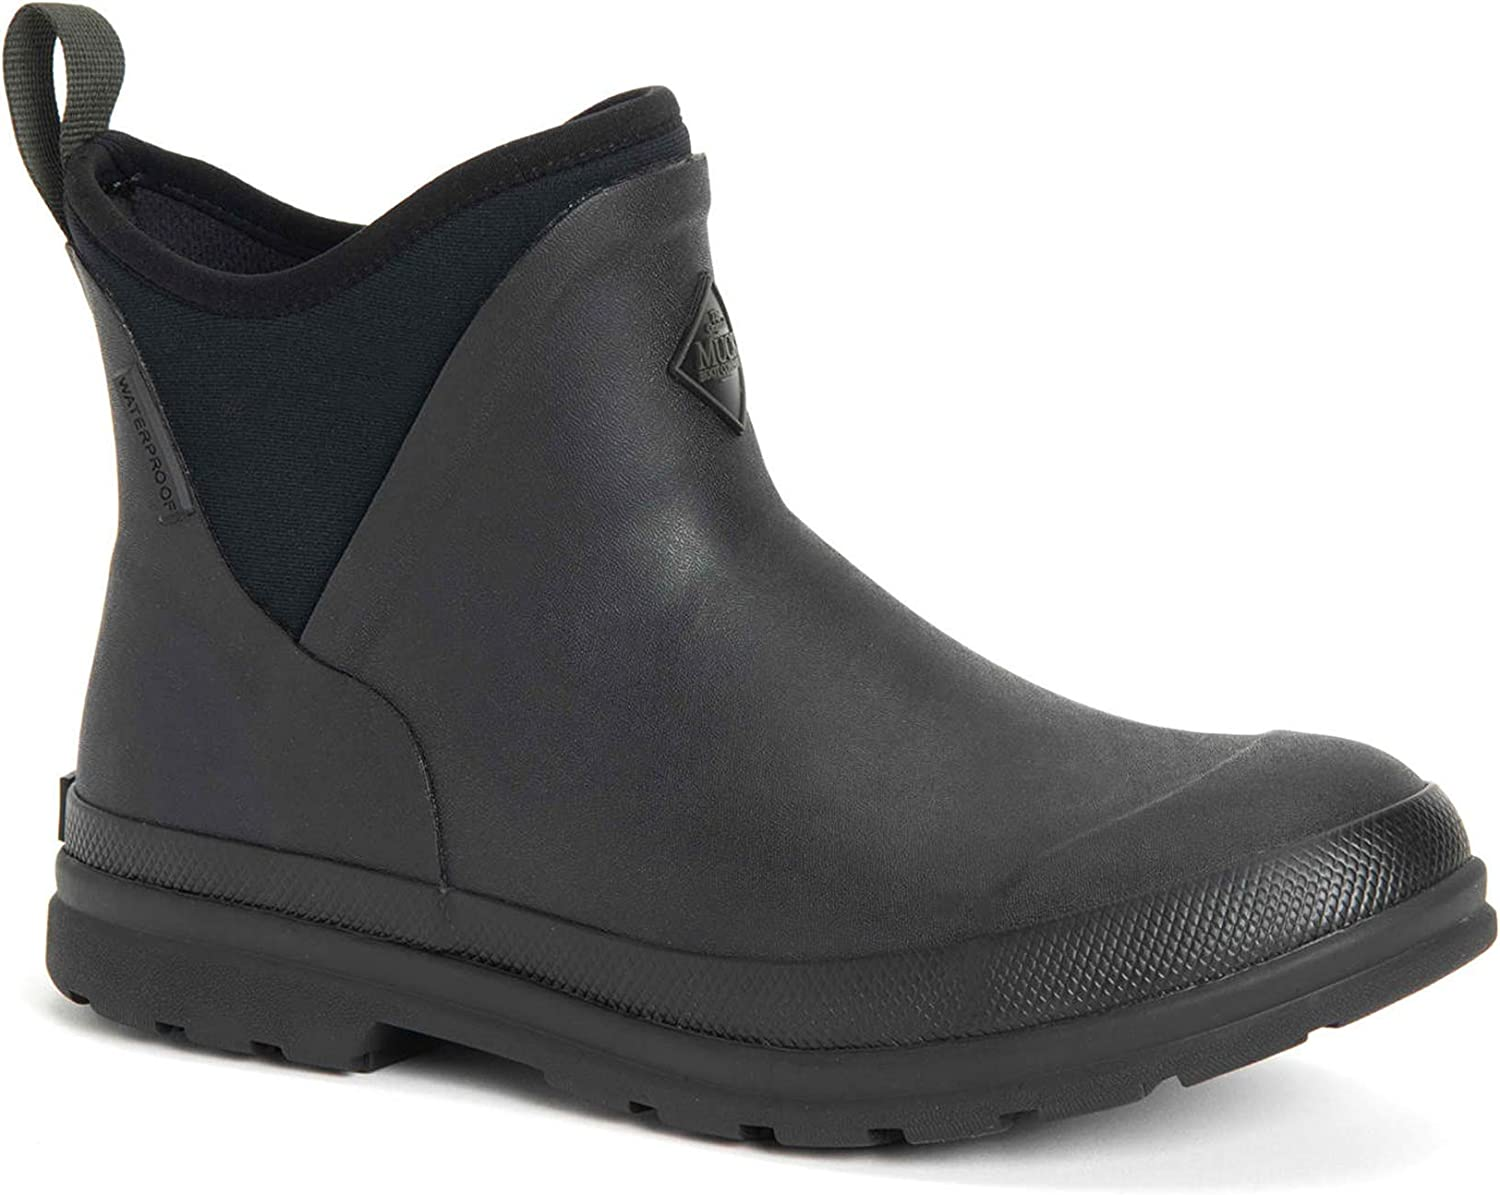 Muck Boot Womens Originals Ankle Boots